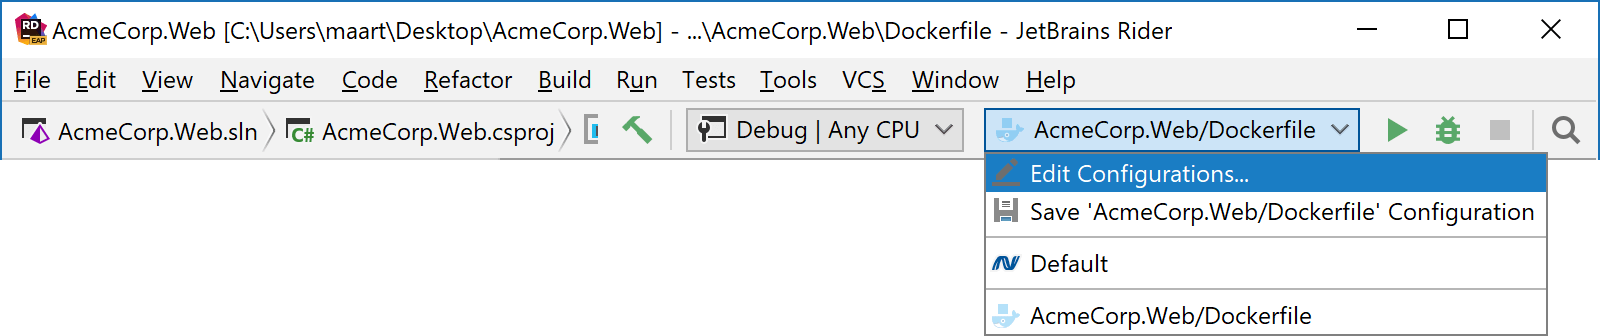 Rider toolbar displays new Docker run/debug configuration